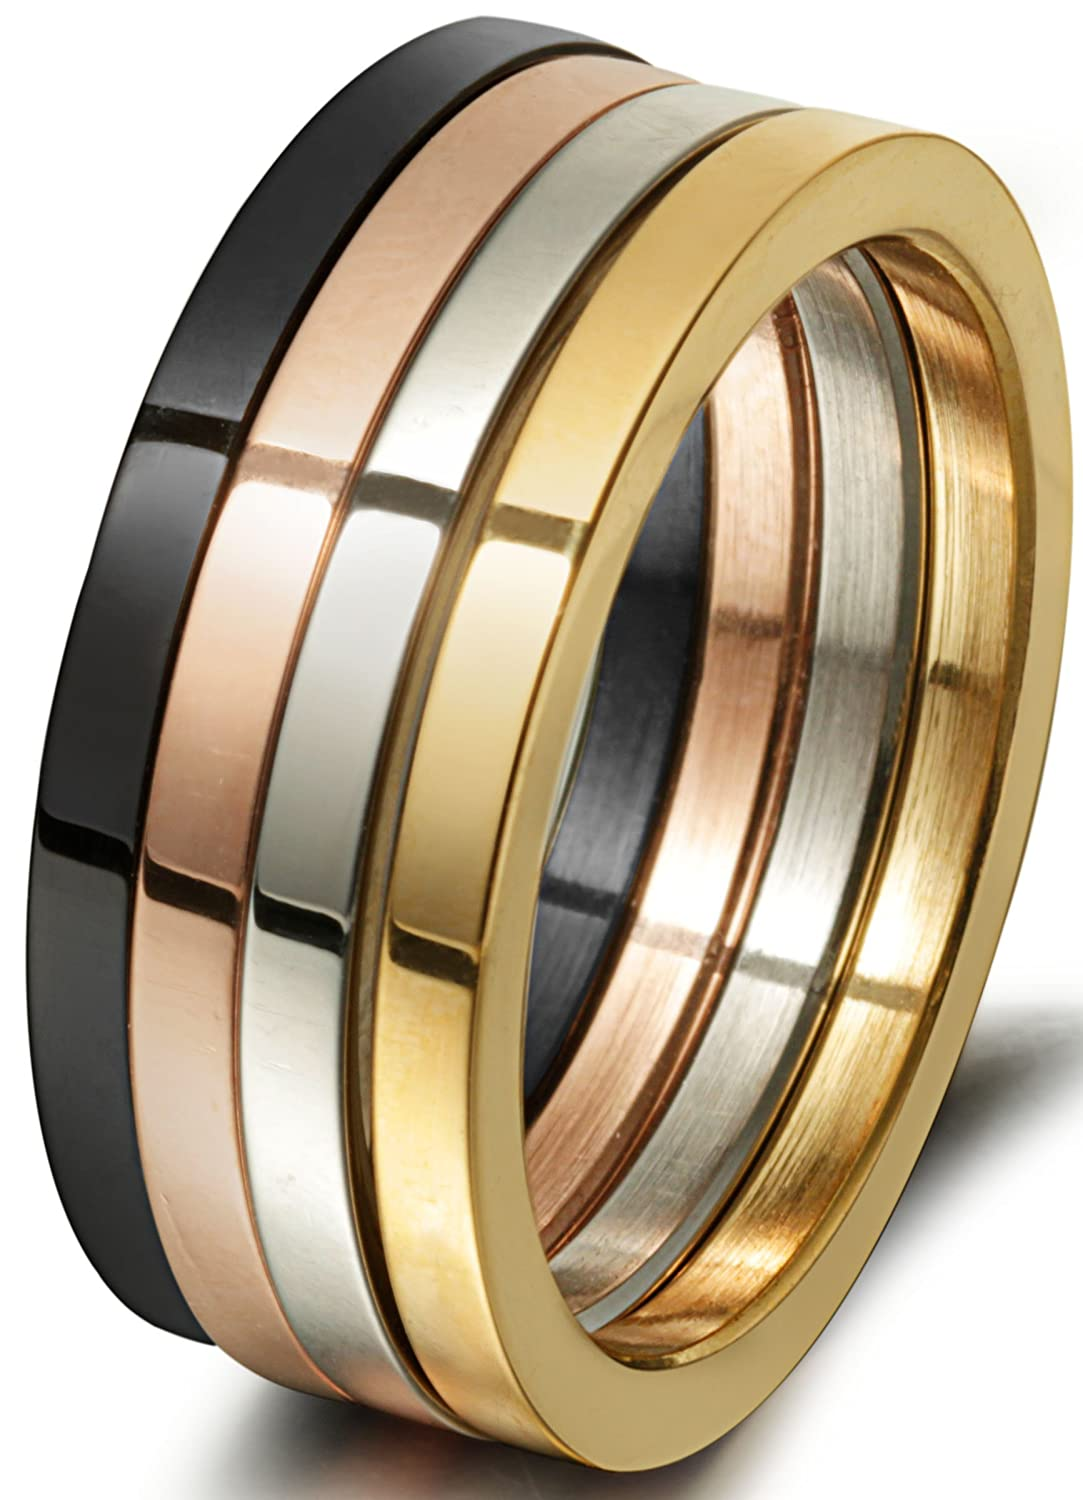 Amazon.com: Jstyle Stainless Steel Womens Finger Rings for Teen ...